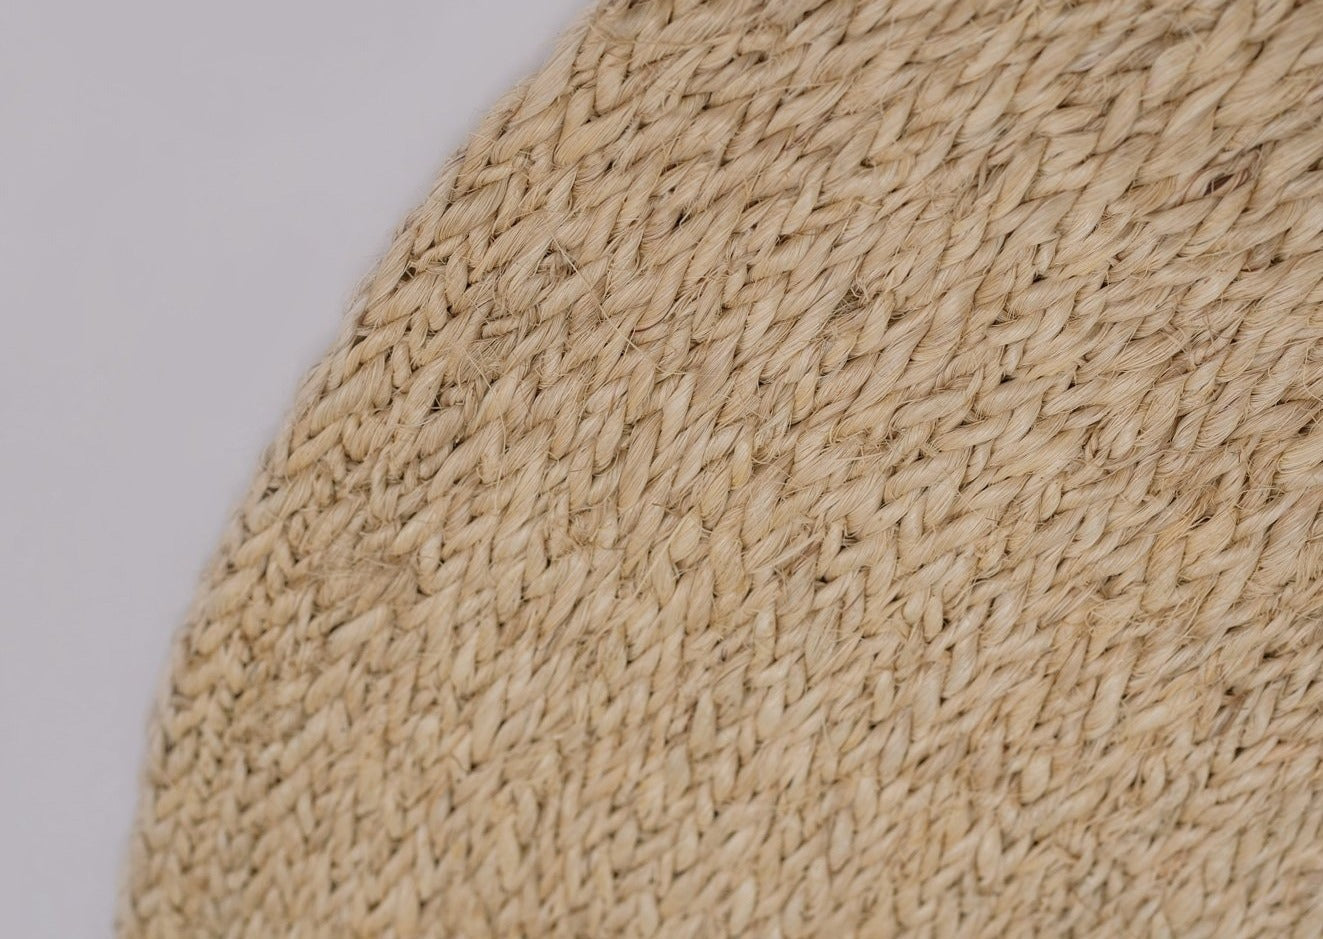 The Monimbó Handwoven Round Natural Sisal Rug Collection, Multiple Sizes